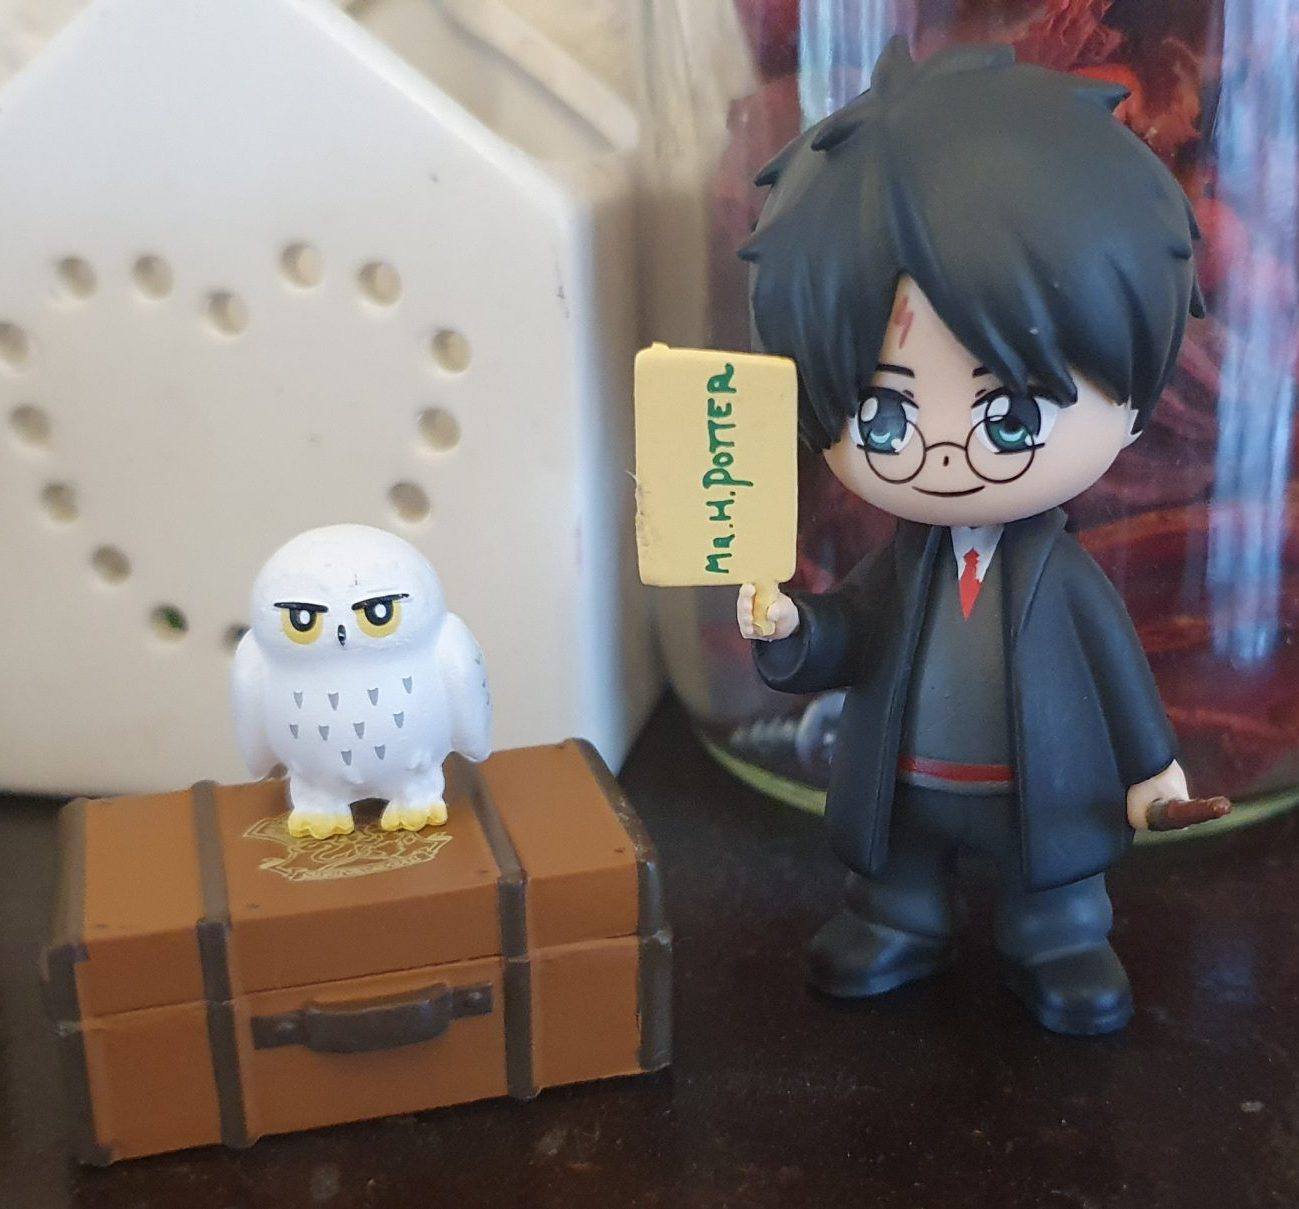 Magical Capsules contents Harry Potter figure, suitcase, Hedwig, wand and letter) after unwrapping